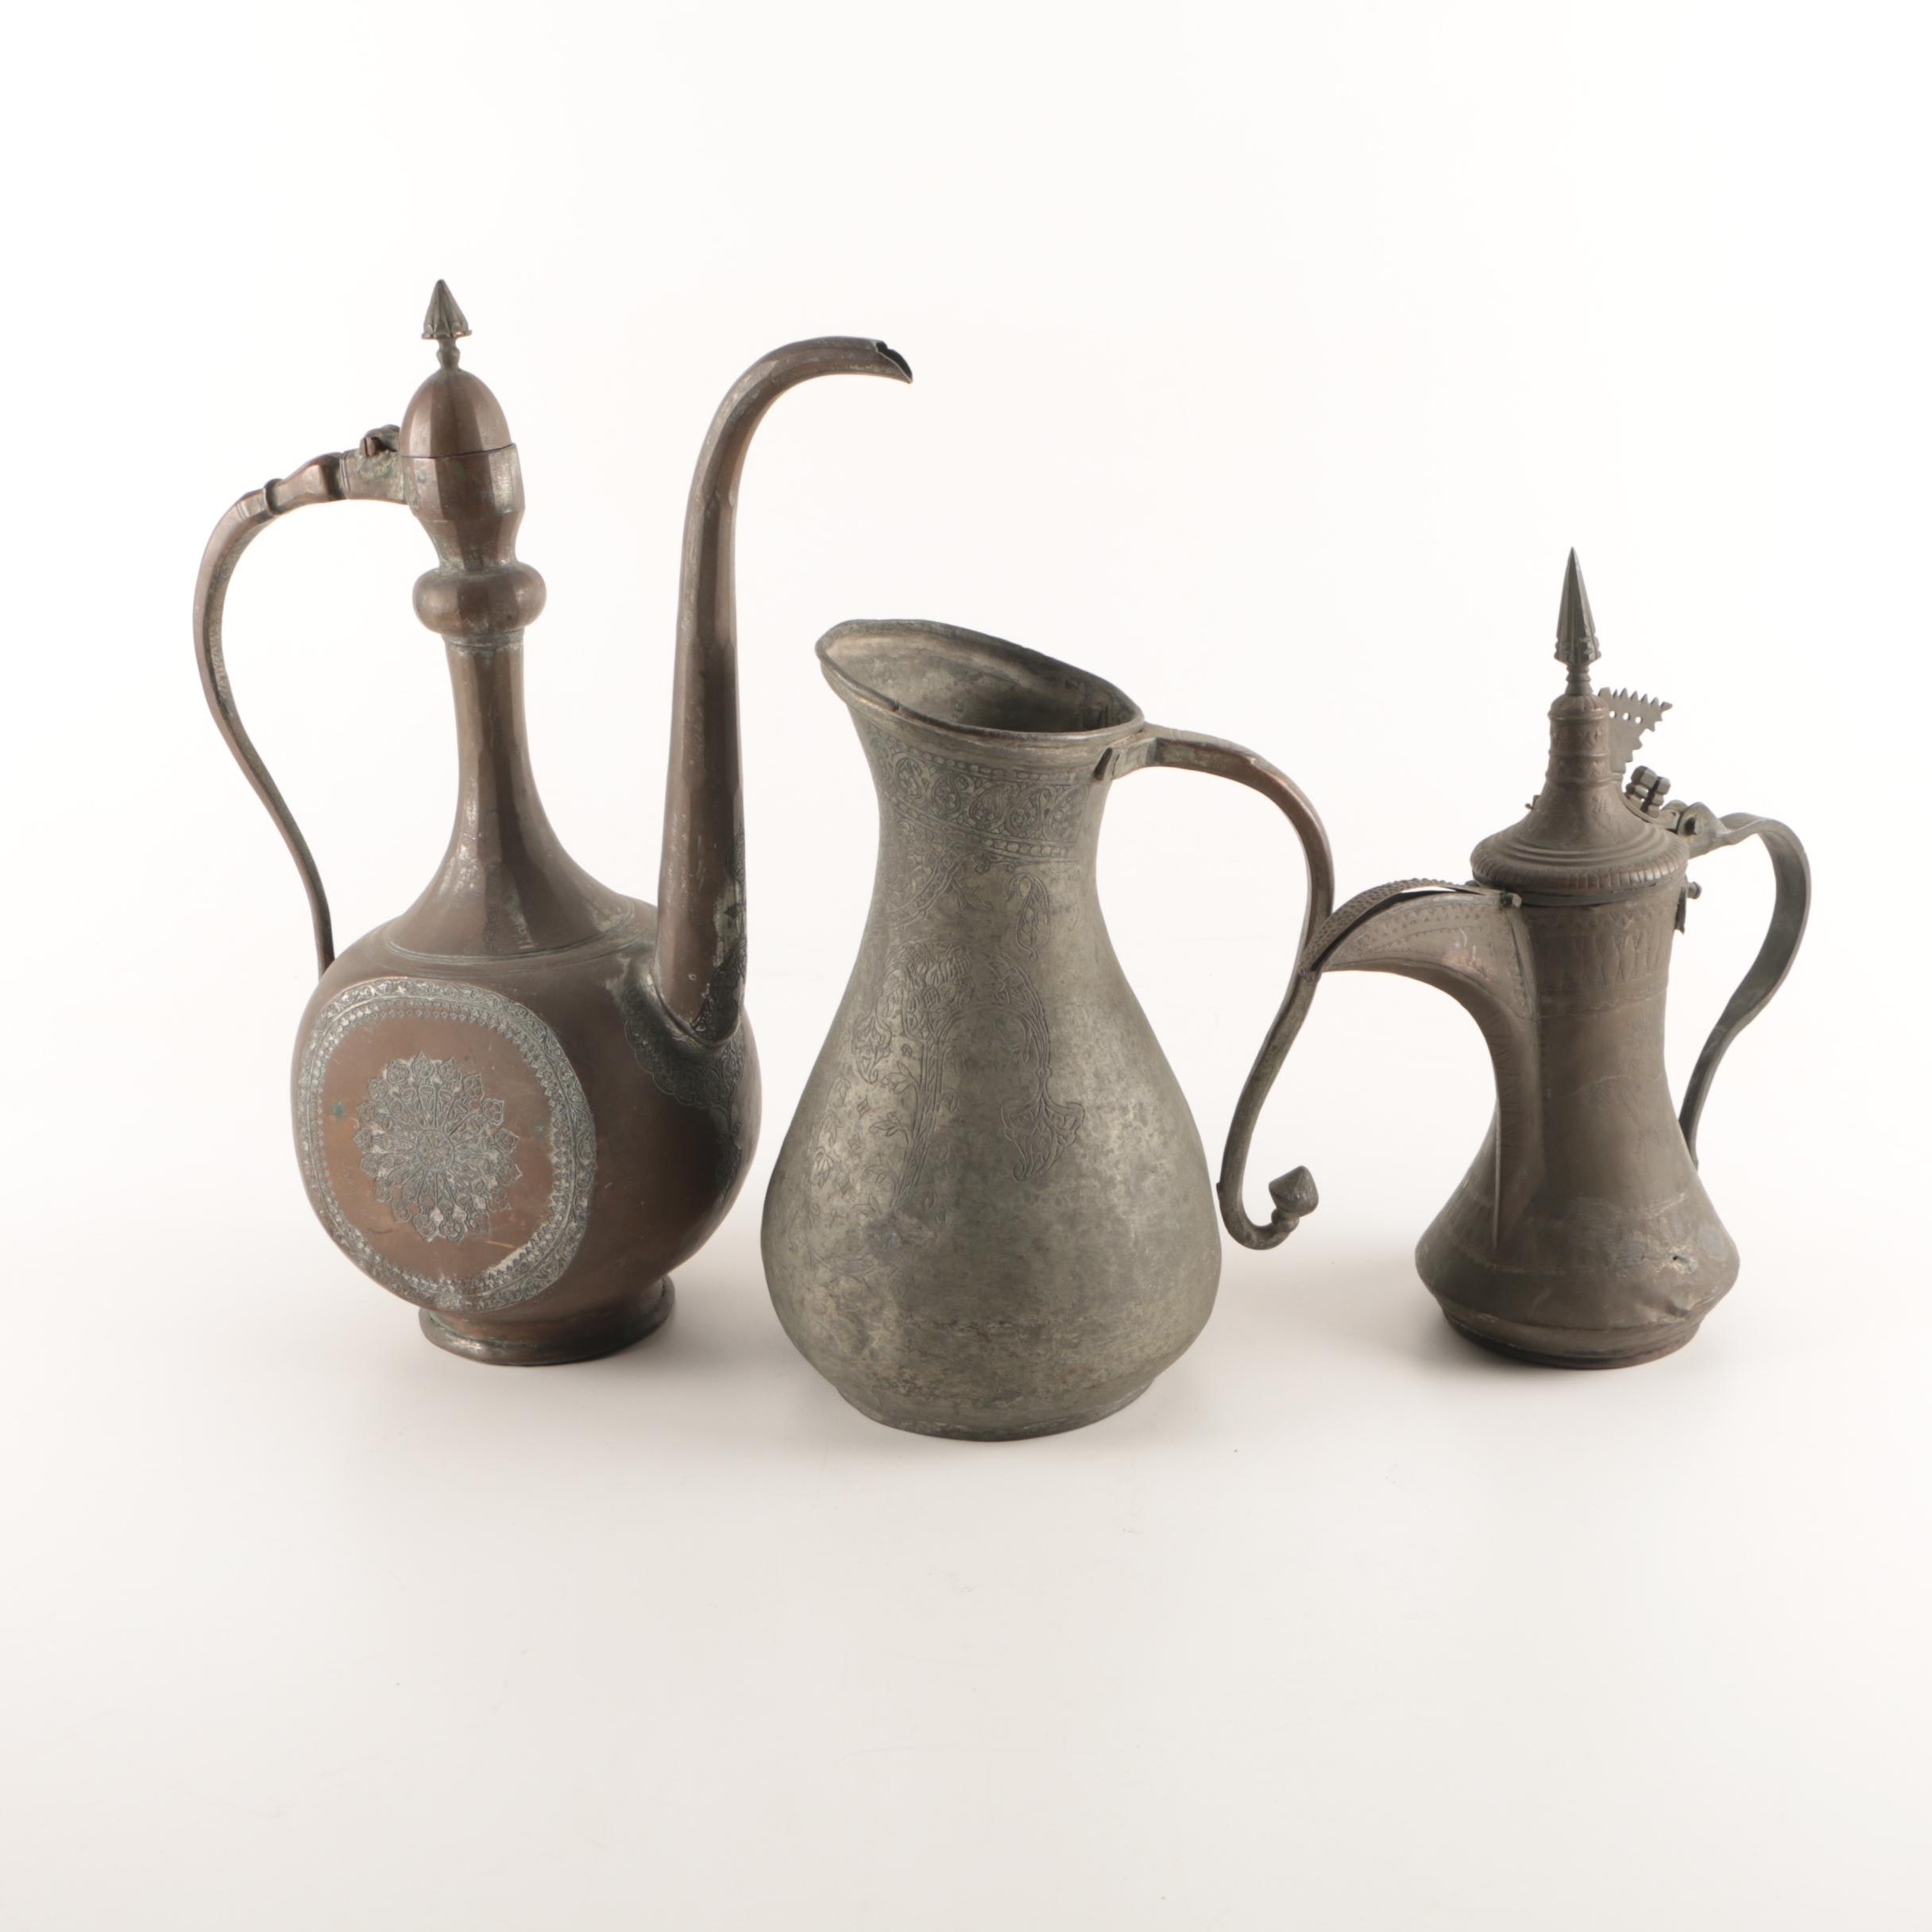 Collection of Hand Made Middle Eastern Hot Beverage Pots and a Pitcher